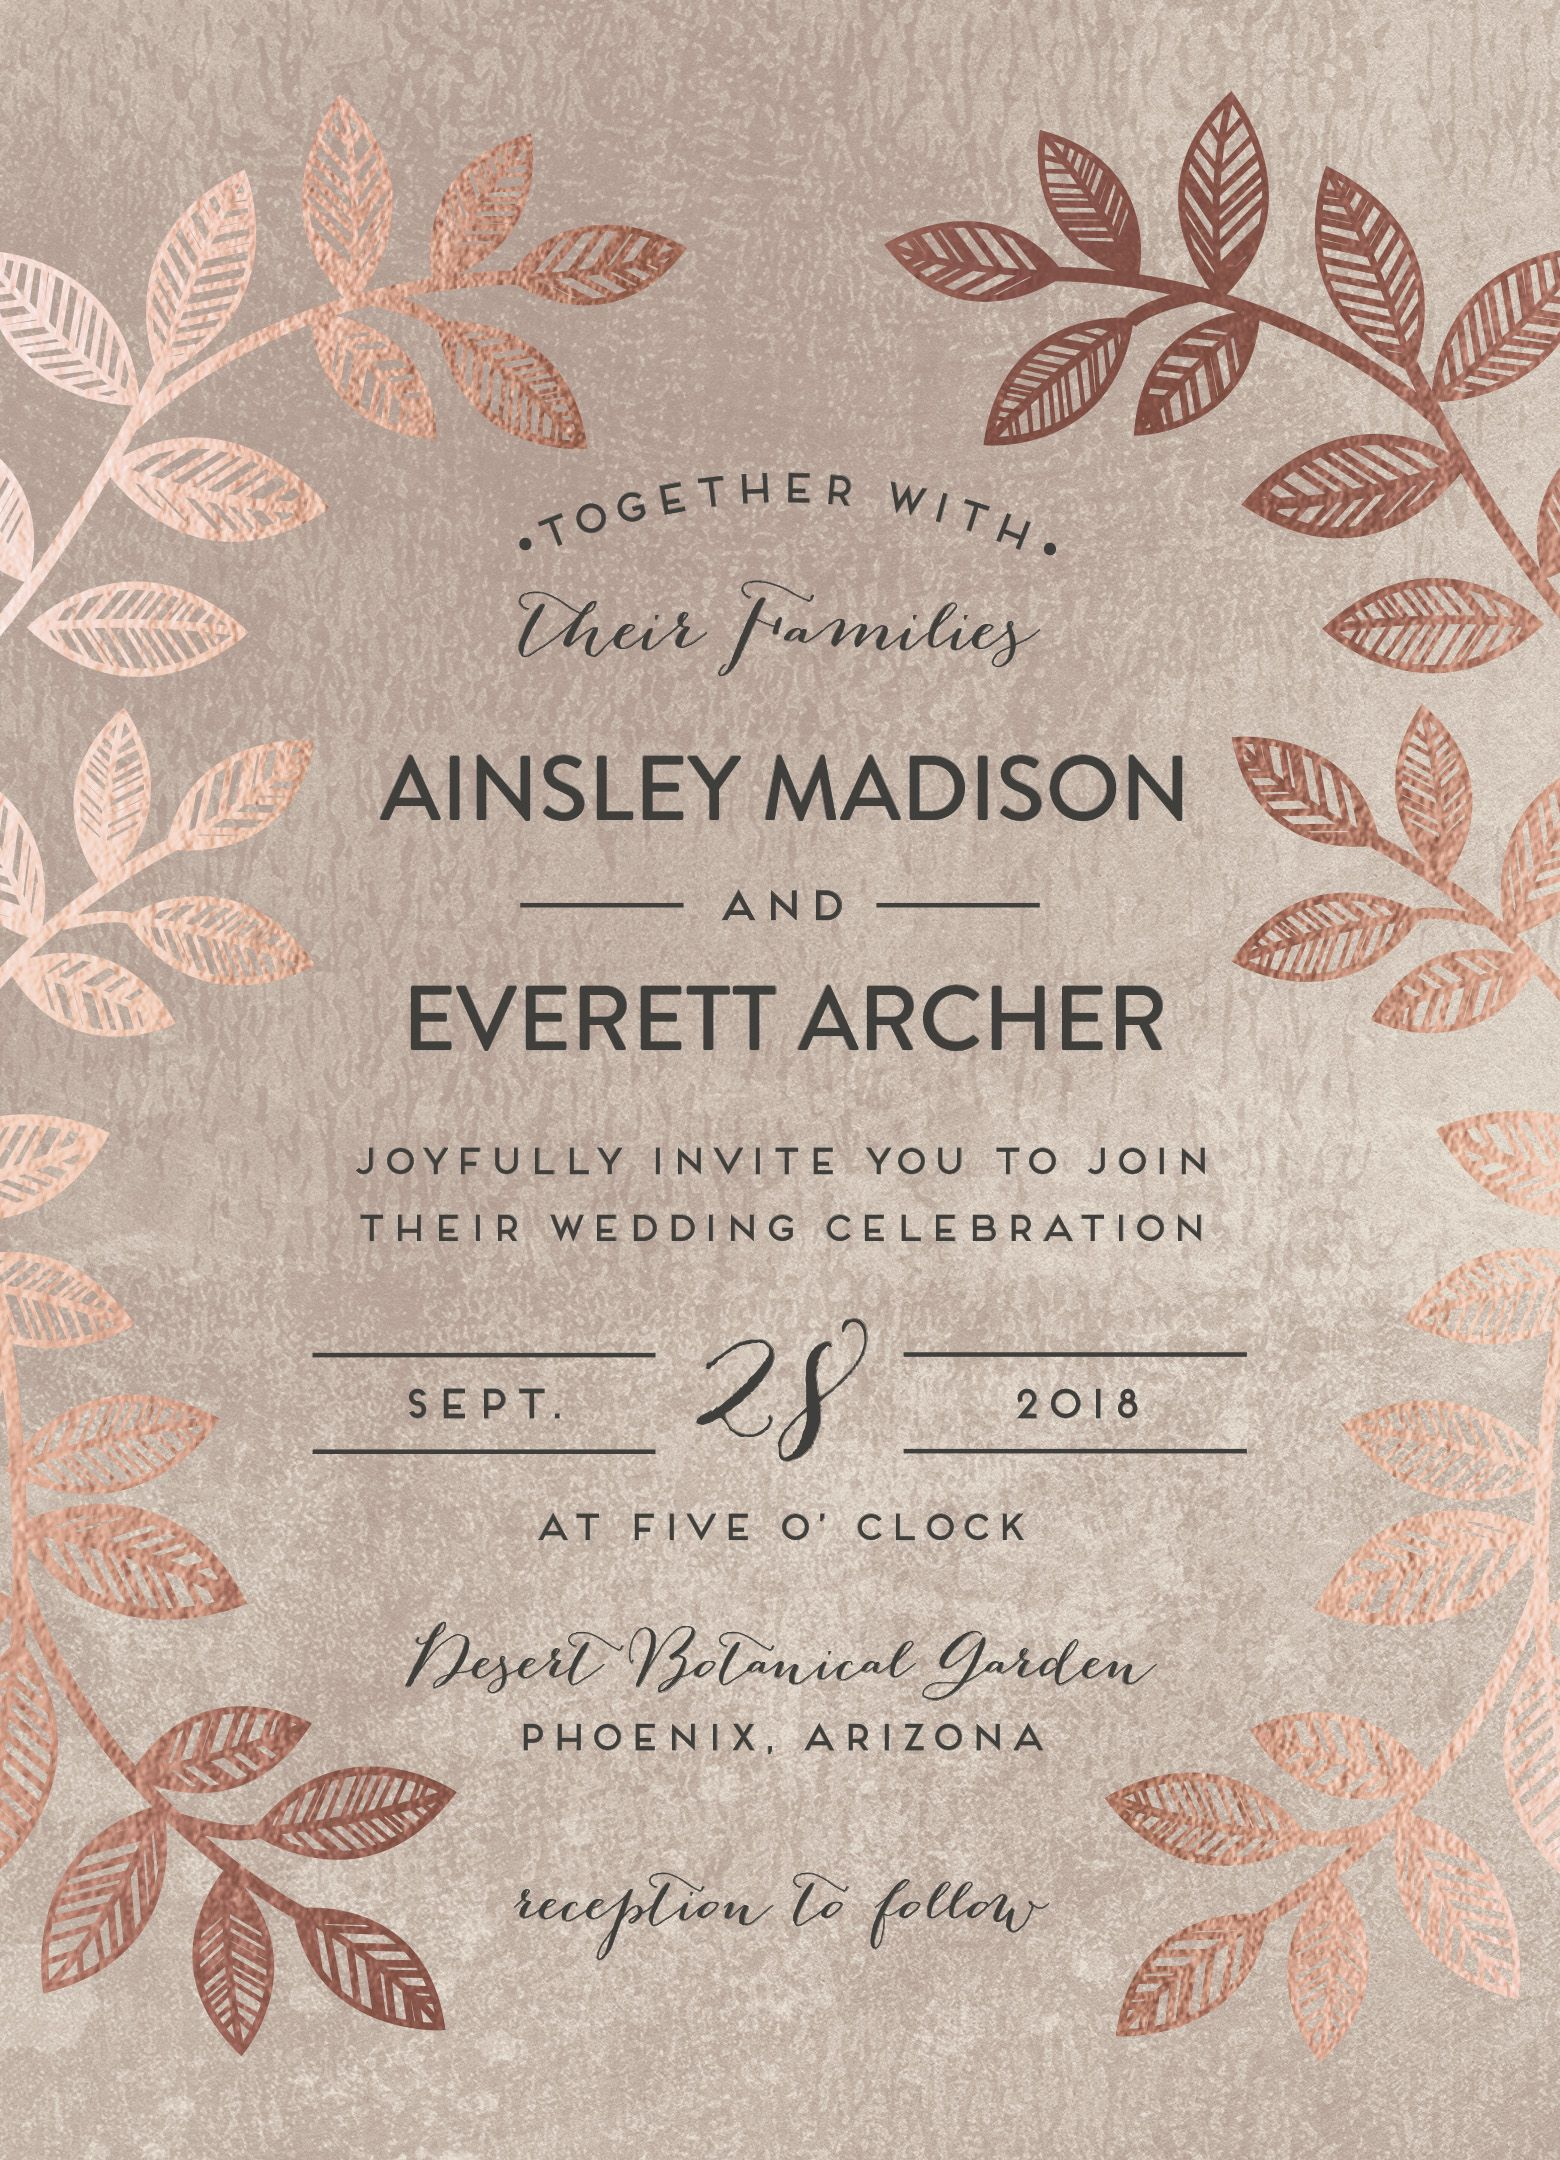 white and gold wedding invitations%0A Folk inspired wedding invitation design with real rose gold foil detail  By  Minted artist